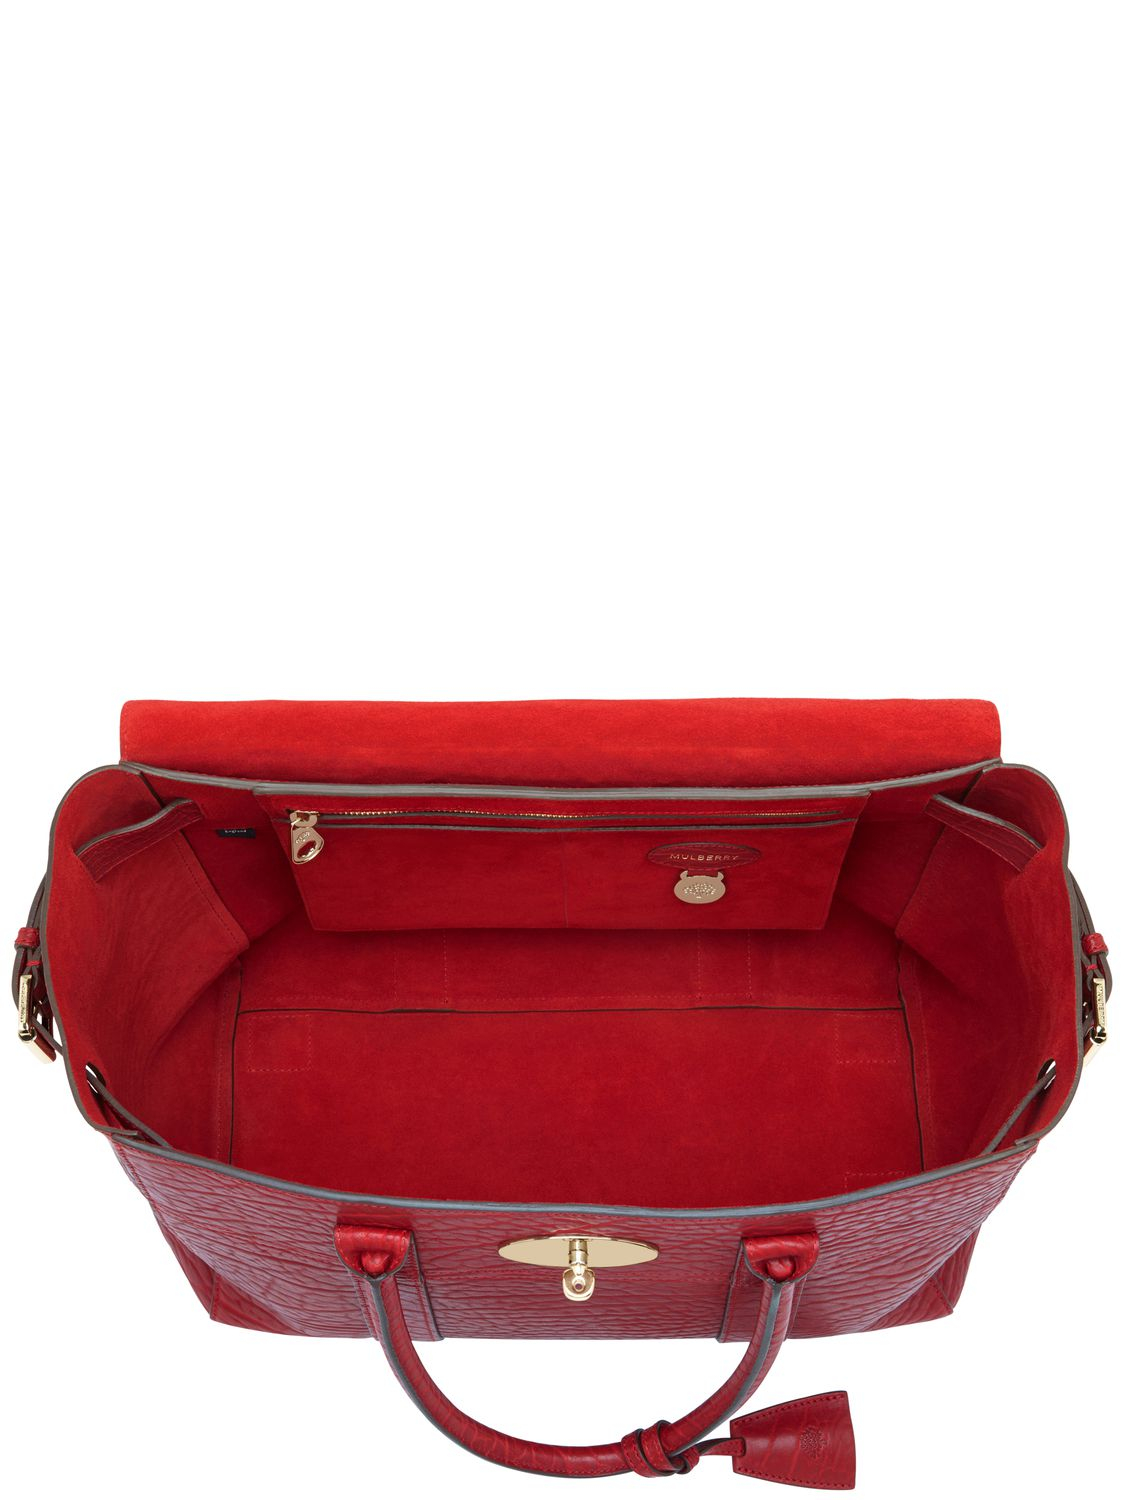 e3d08c7c62 ... discount lyst mulberry large bayswater shrunken leather bag in red  93776 200c7 ...